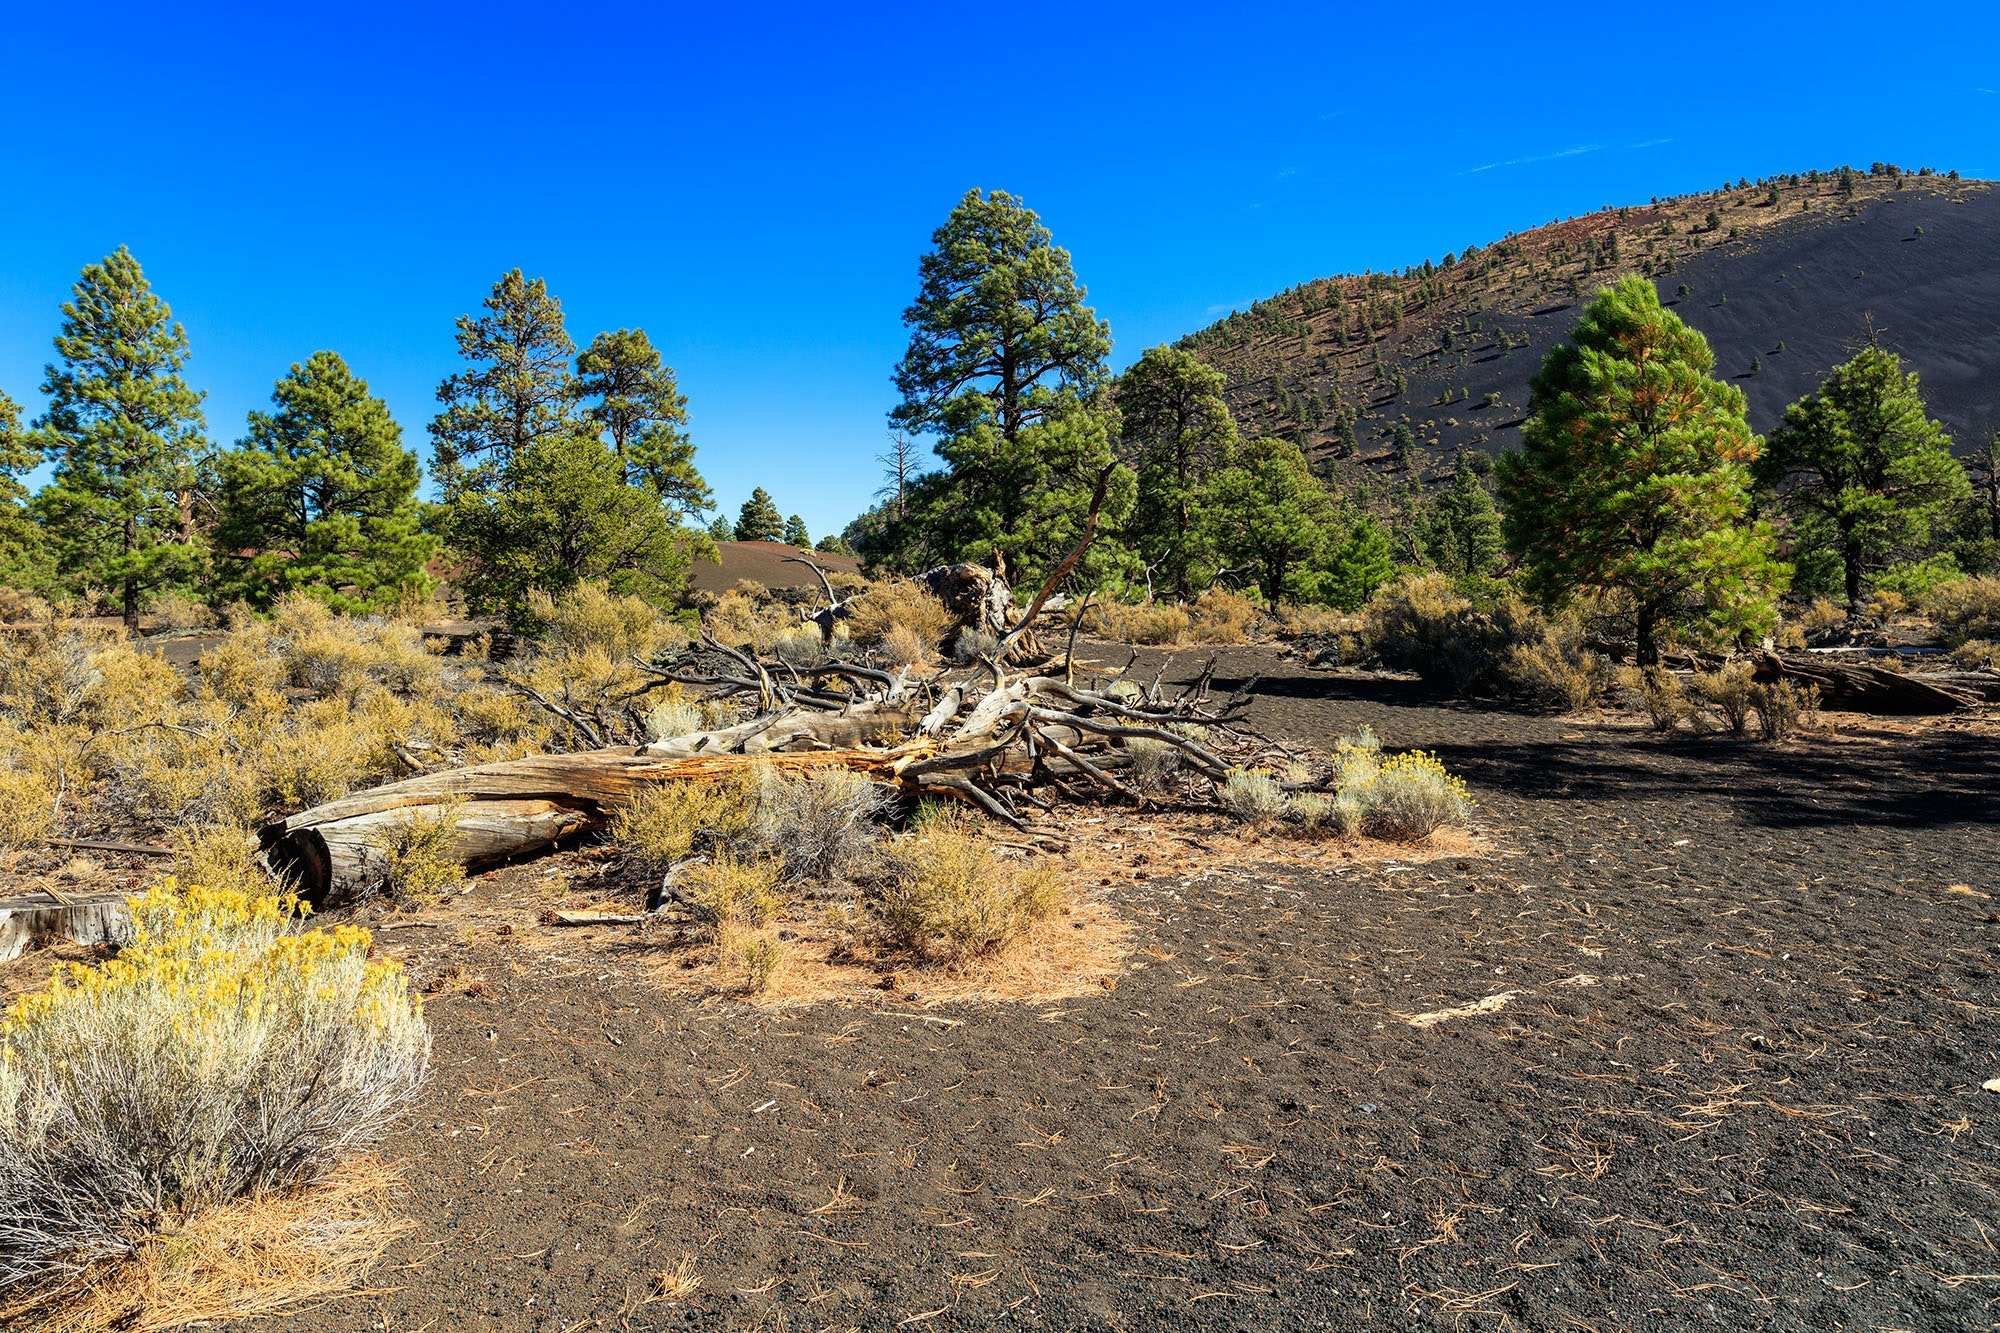 At Sunset Crater Volcano National Monument, you can hike over lava flow and cinder fields.